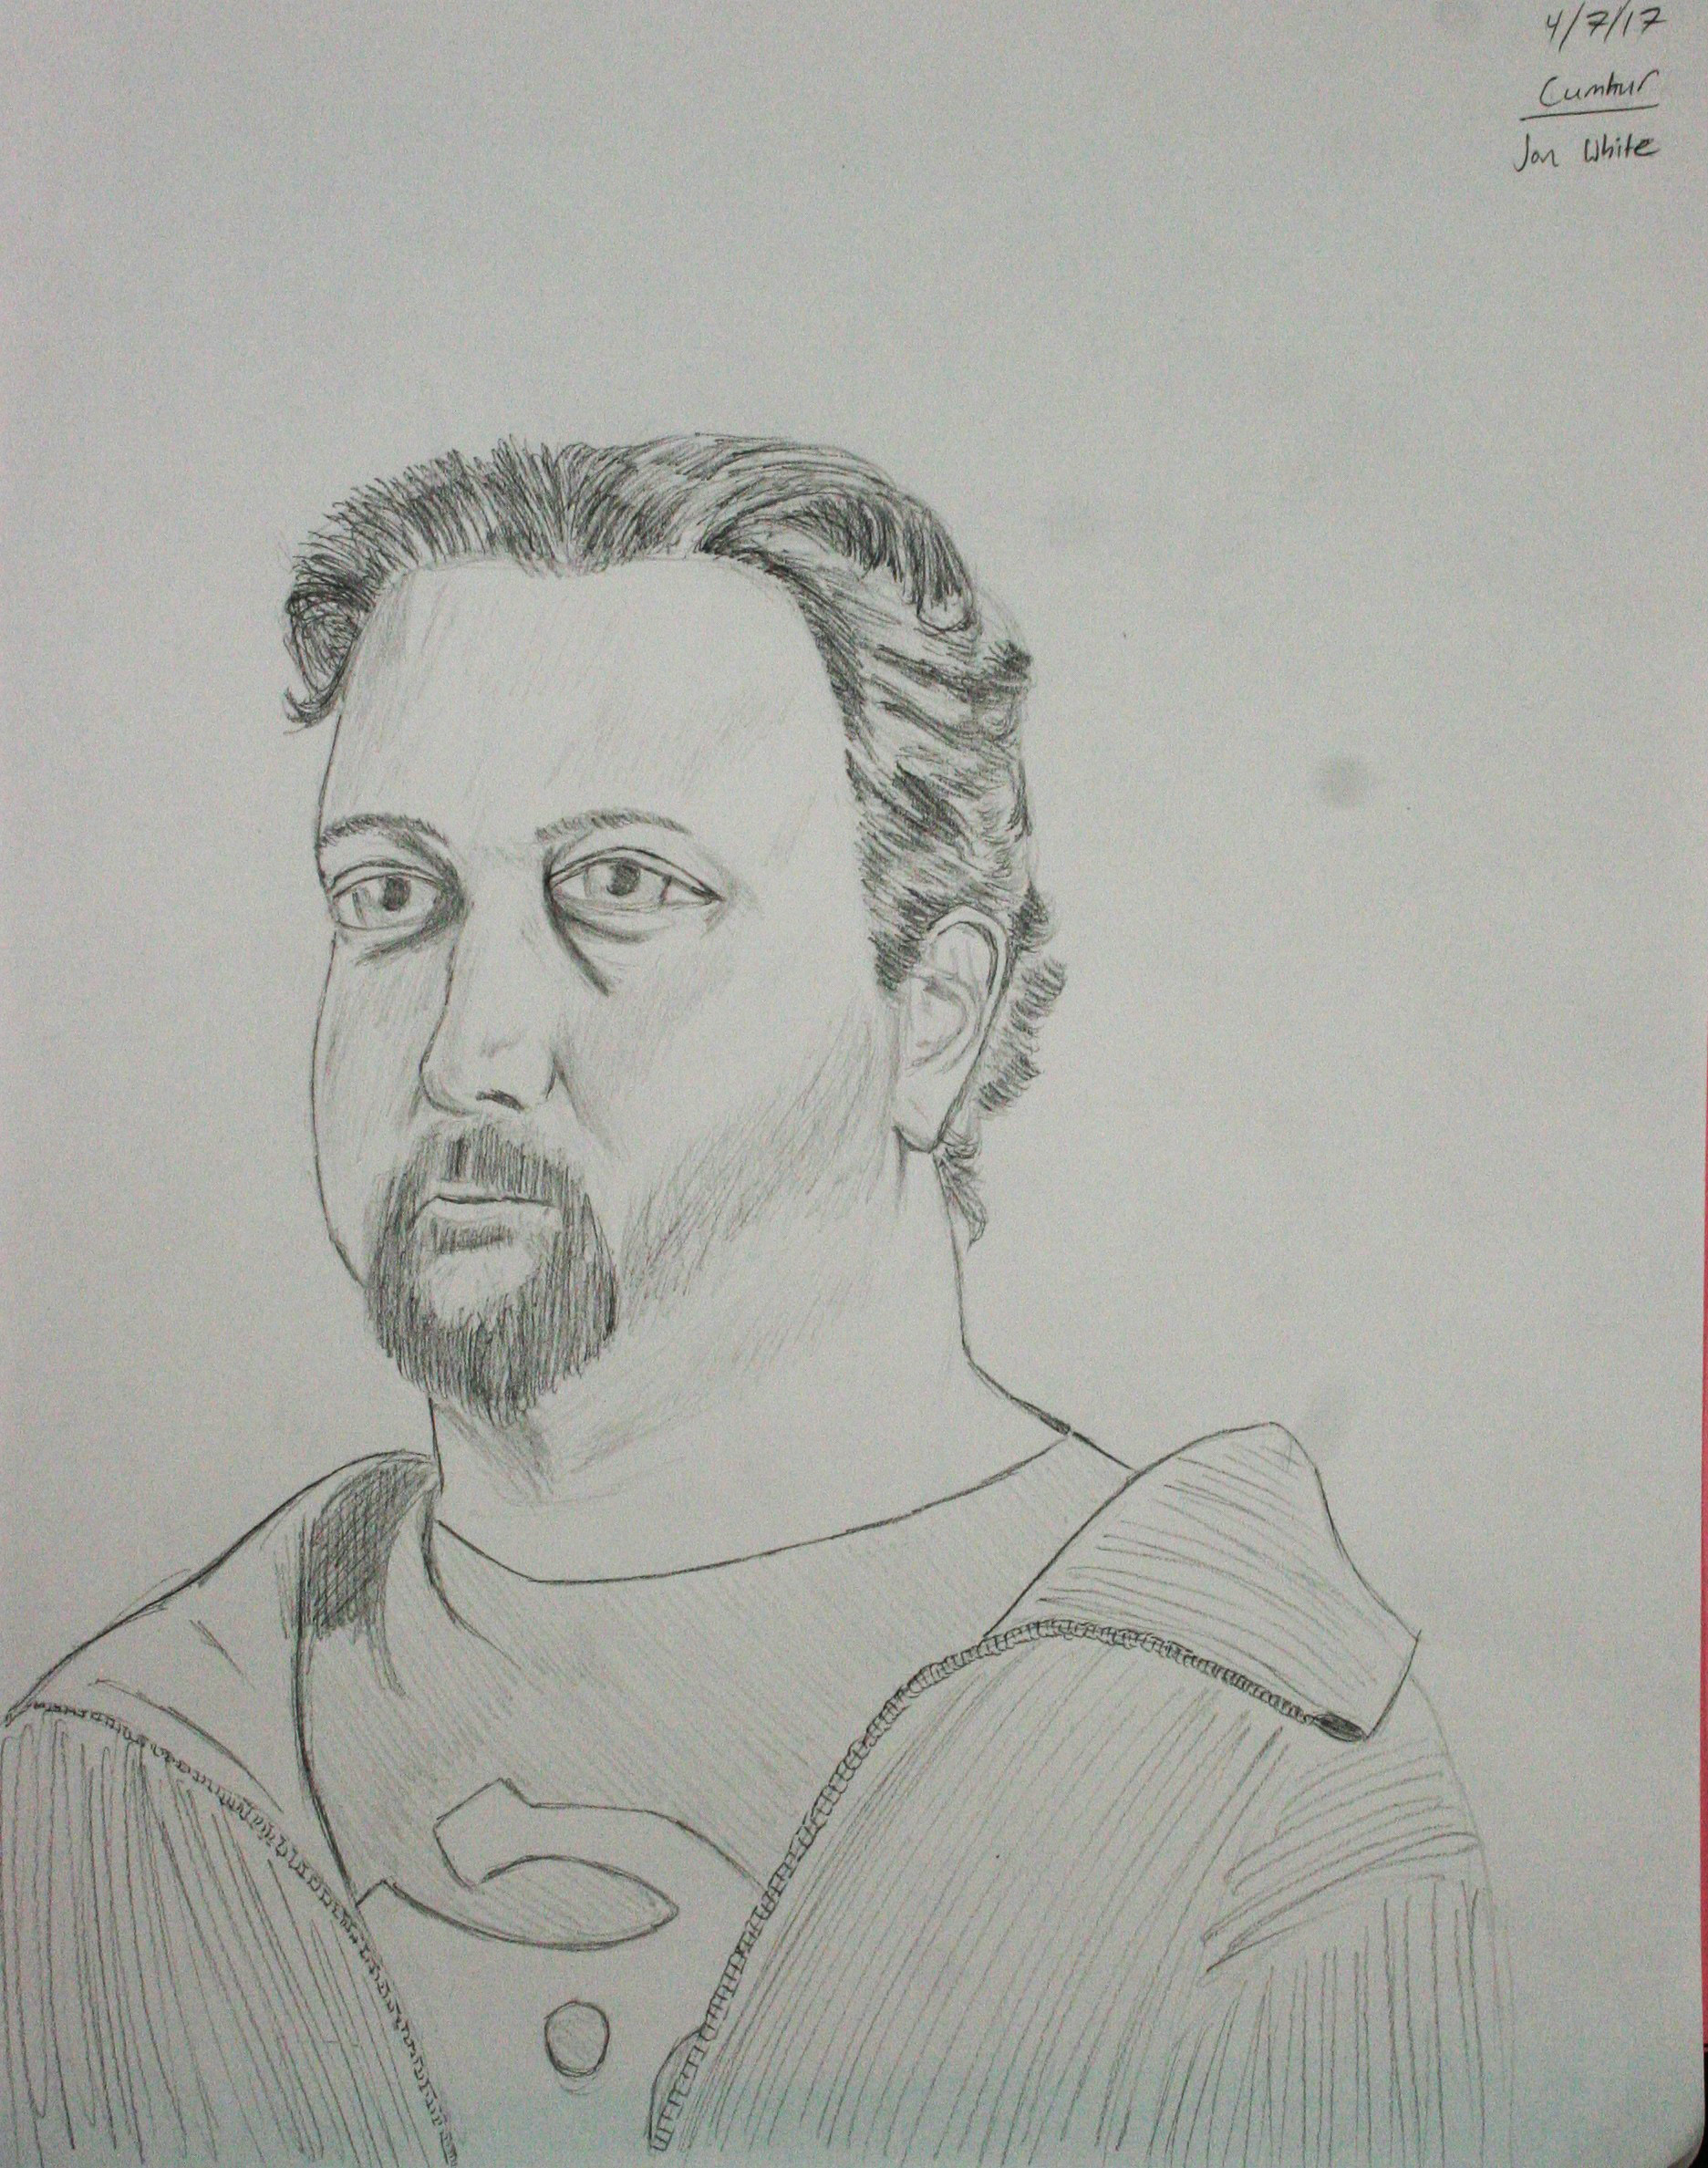 Jonathan White did this 2-hour drawing.